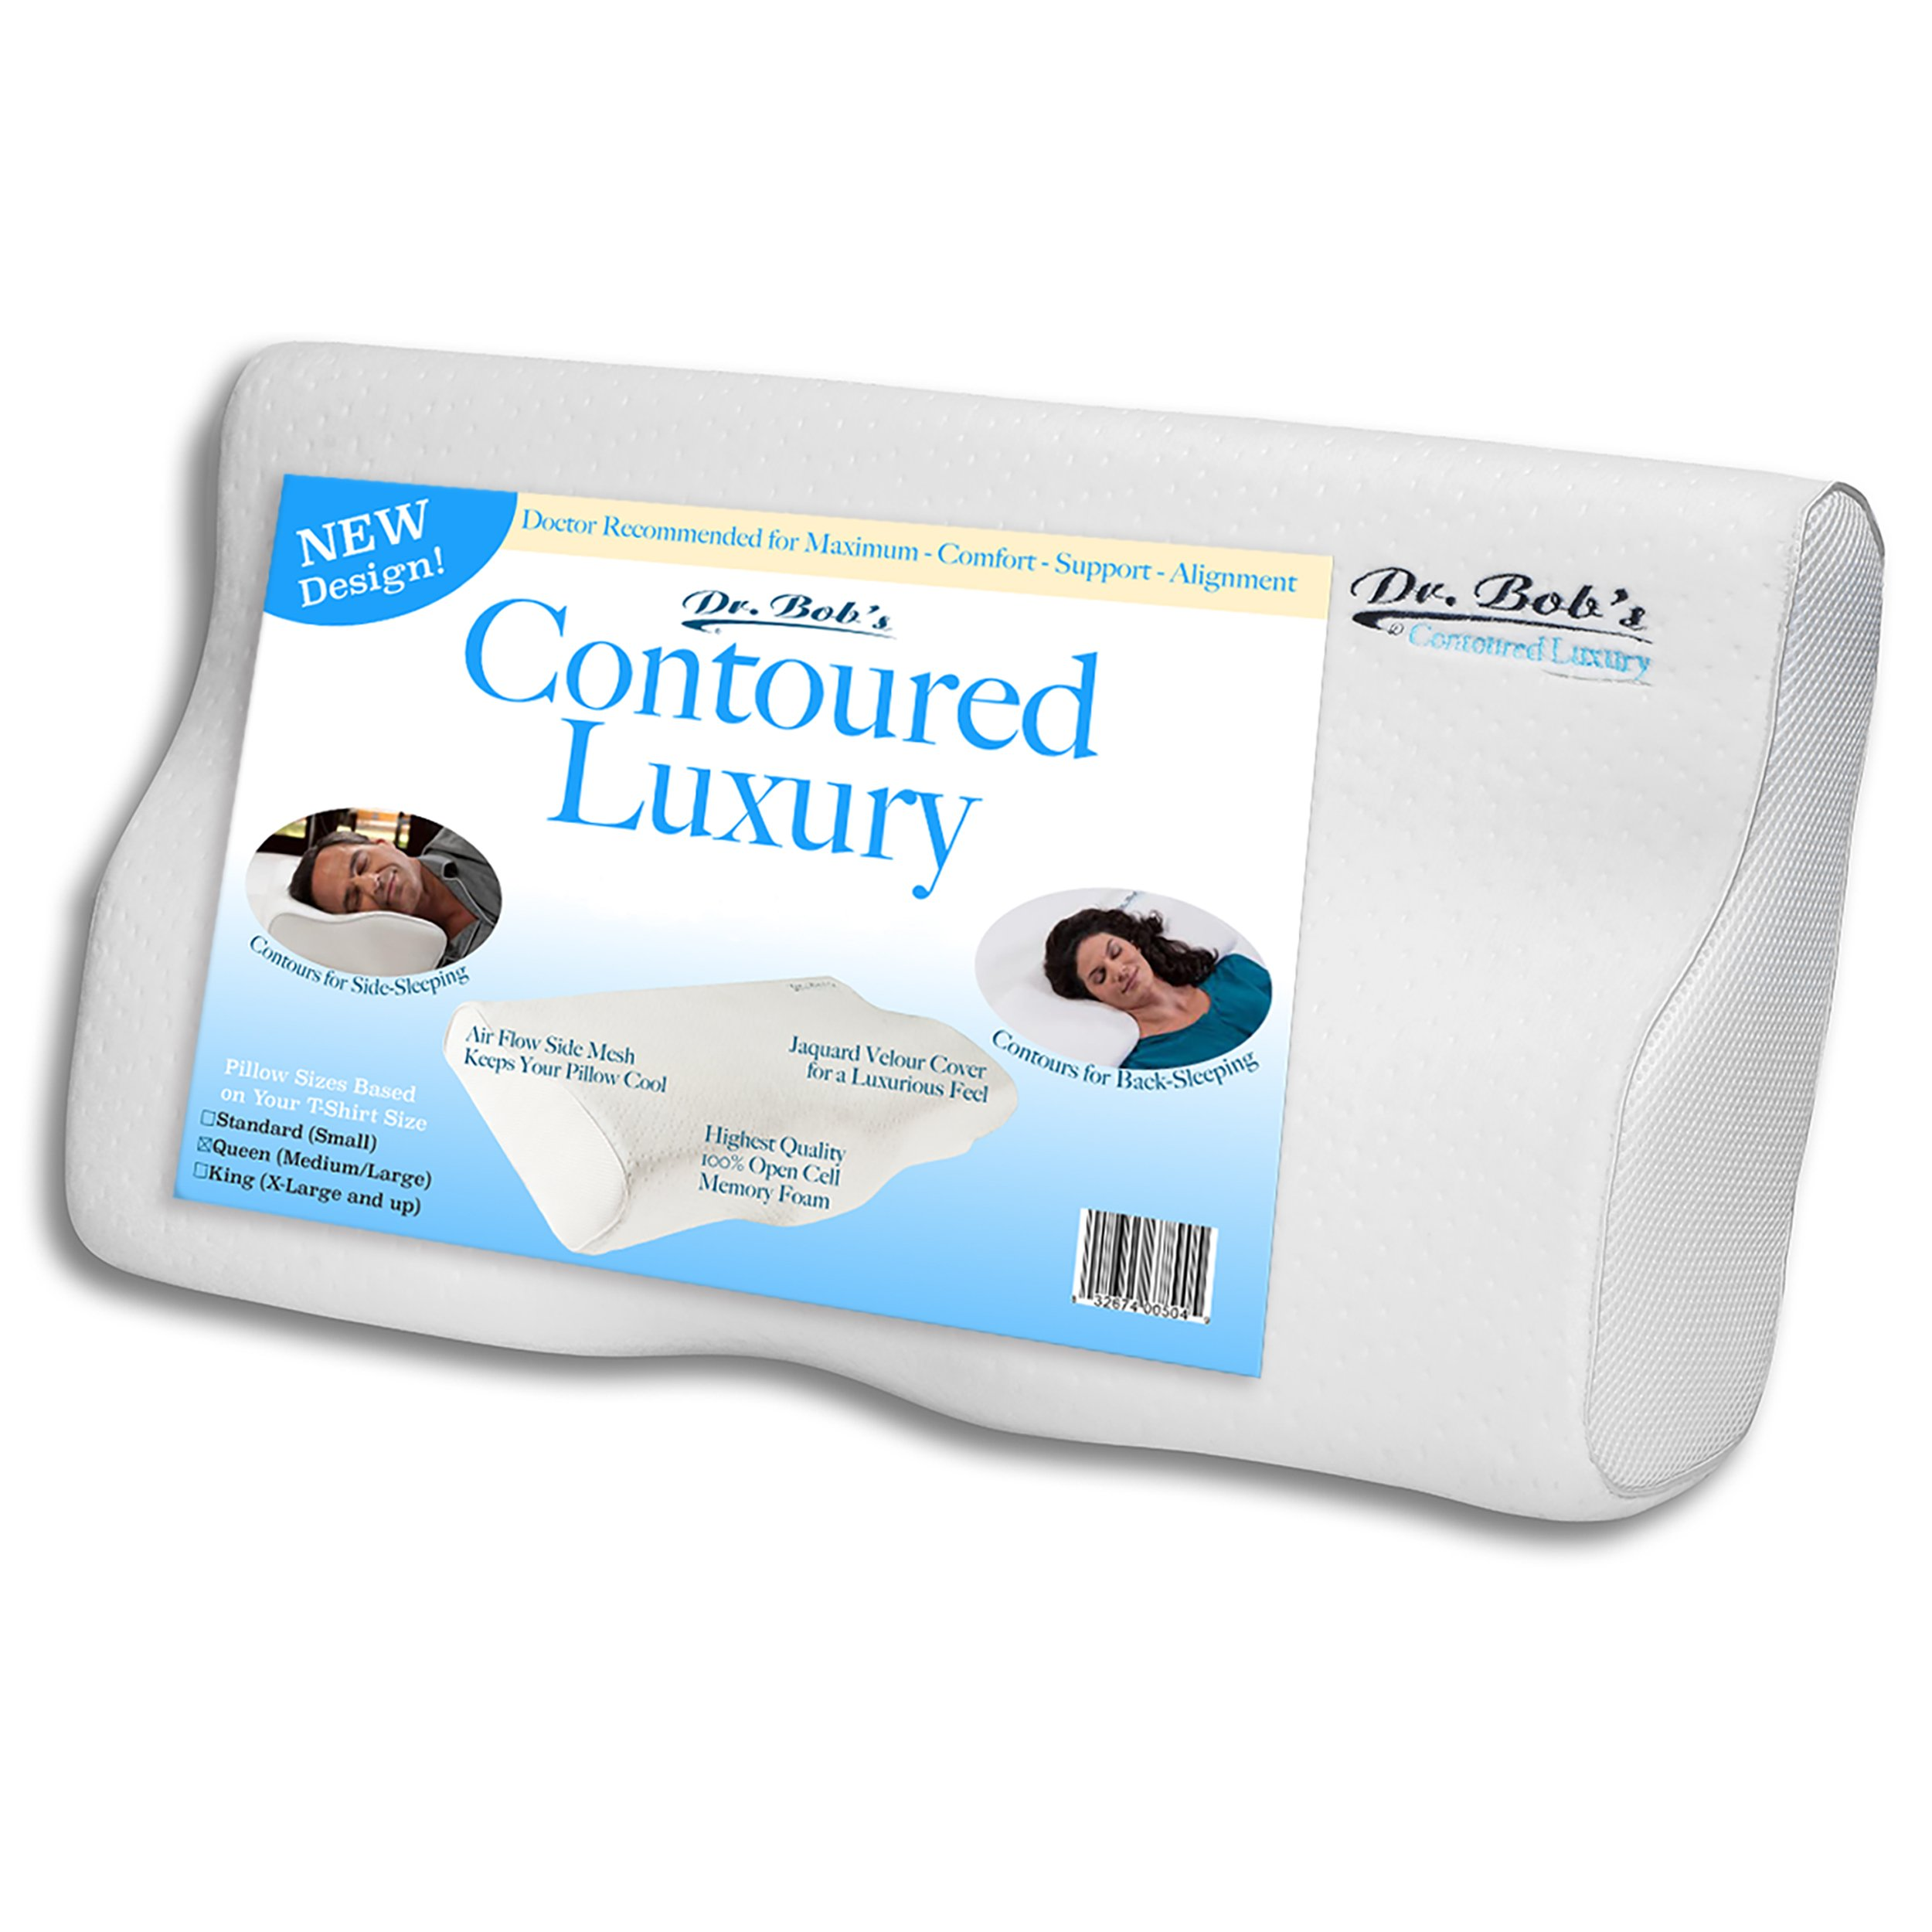 Contoured Luxury - Neck and Cervical Pillow by Dr. Bob's - Memory Foam Contours for Back-Sleeping and Side-Sleeping, Jaquard Velour Cover, Open cell foam, Stays Cool, 3 Sizes - Queen Size